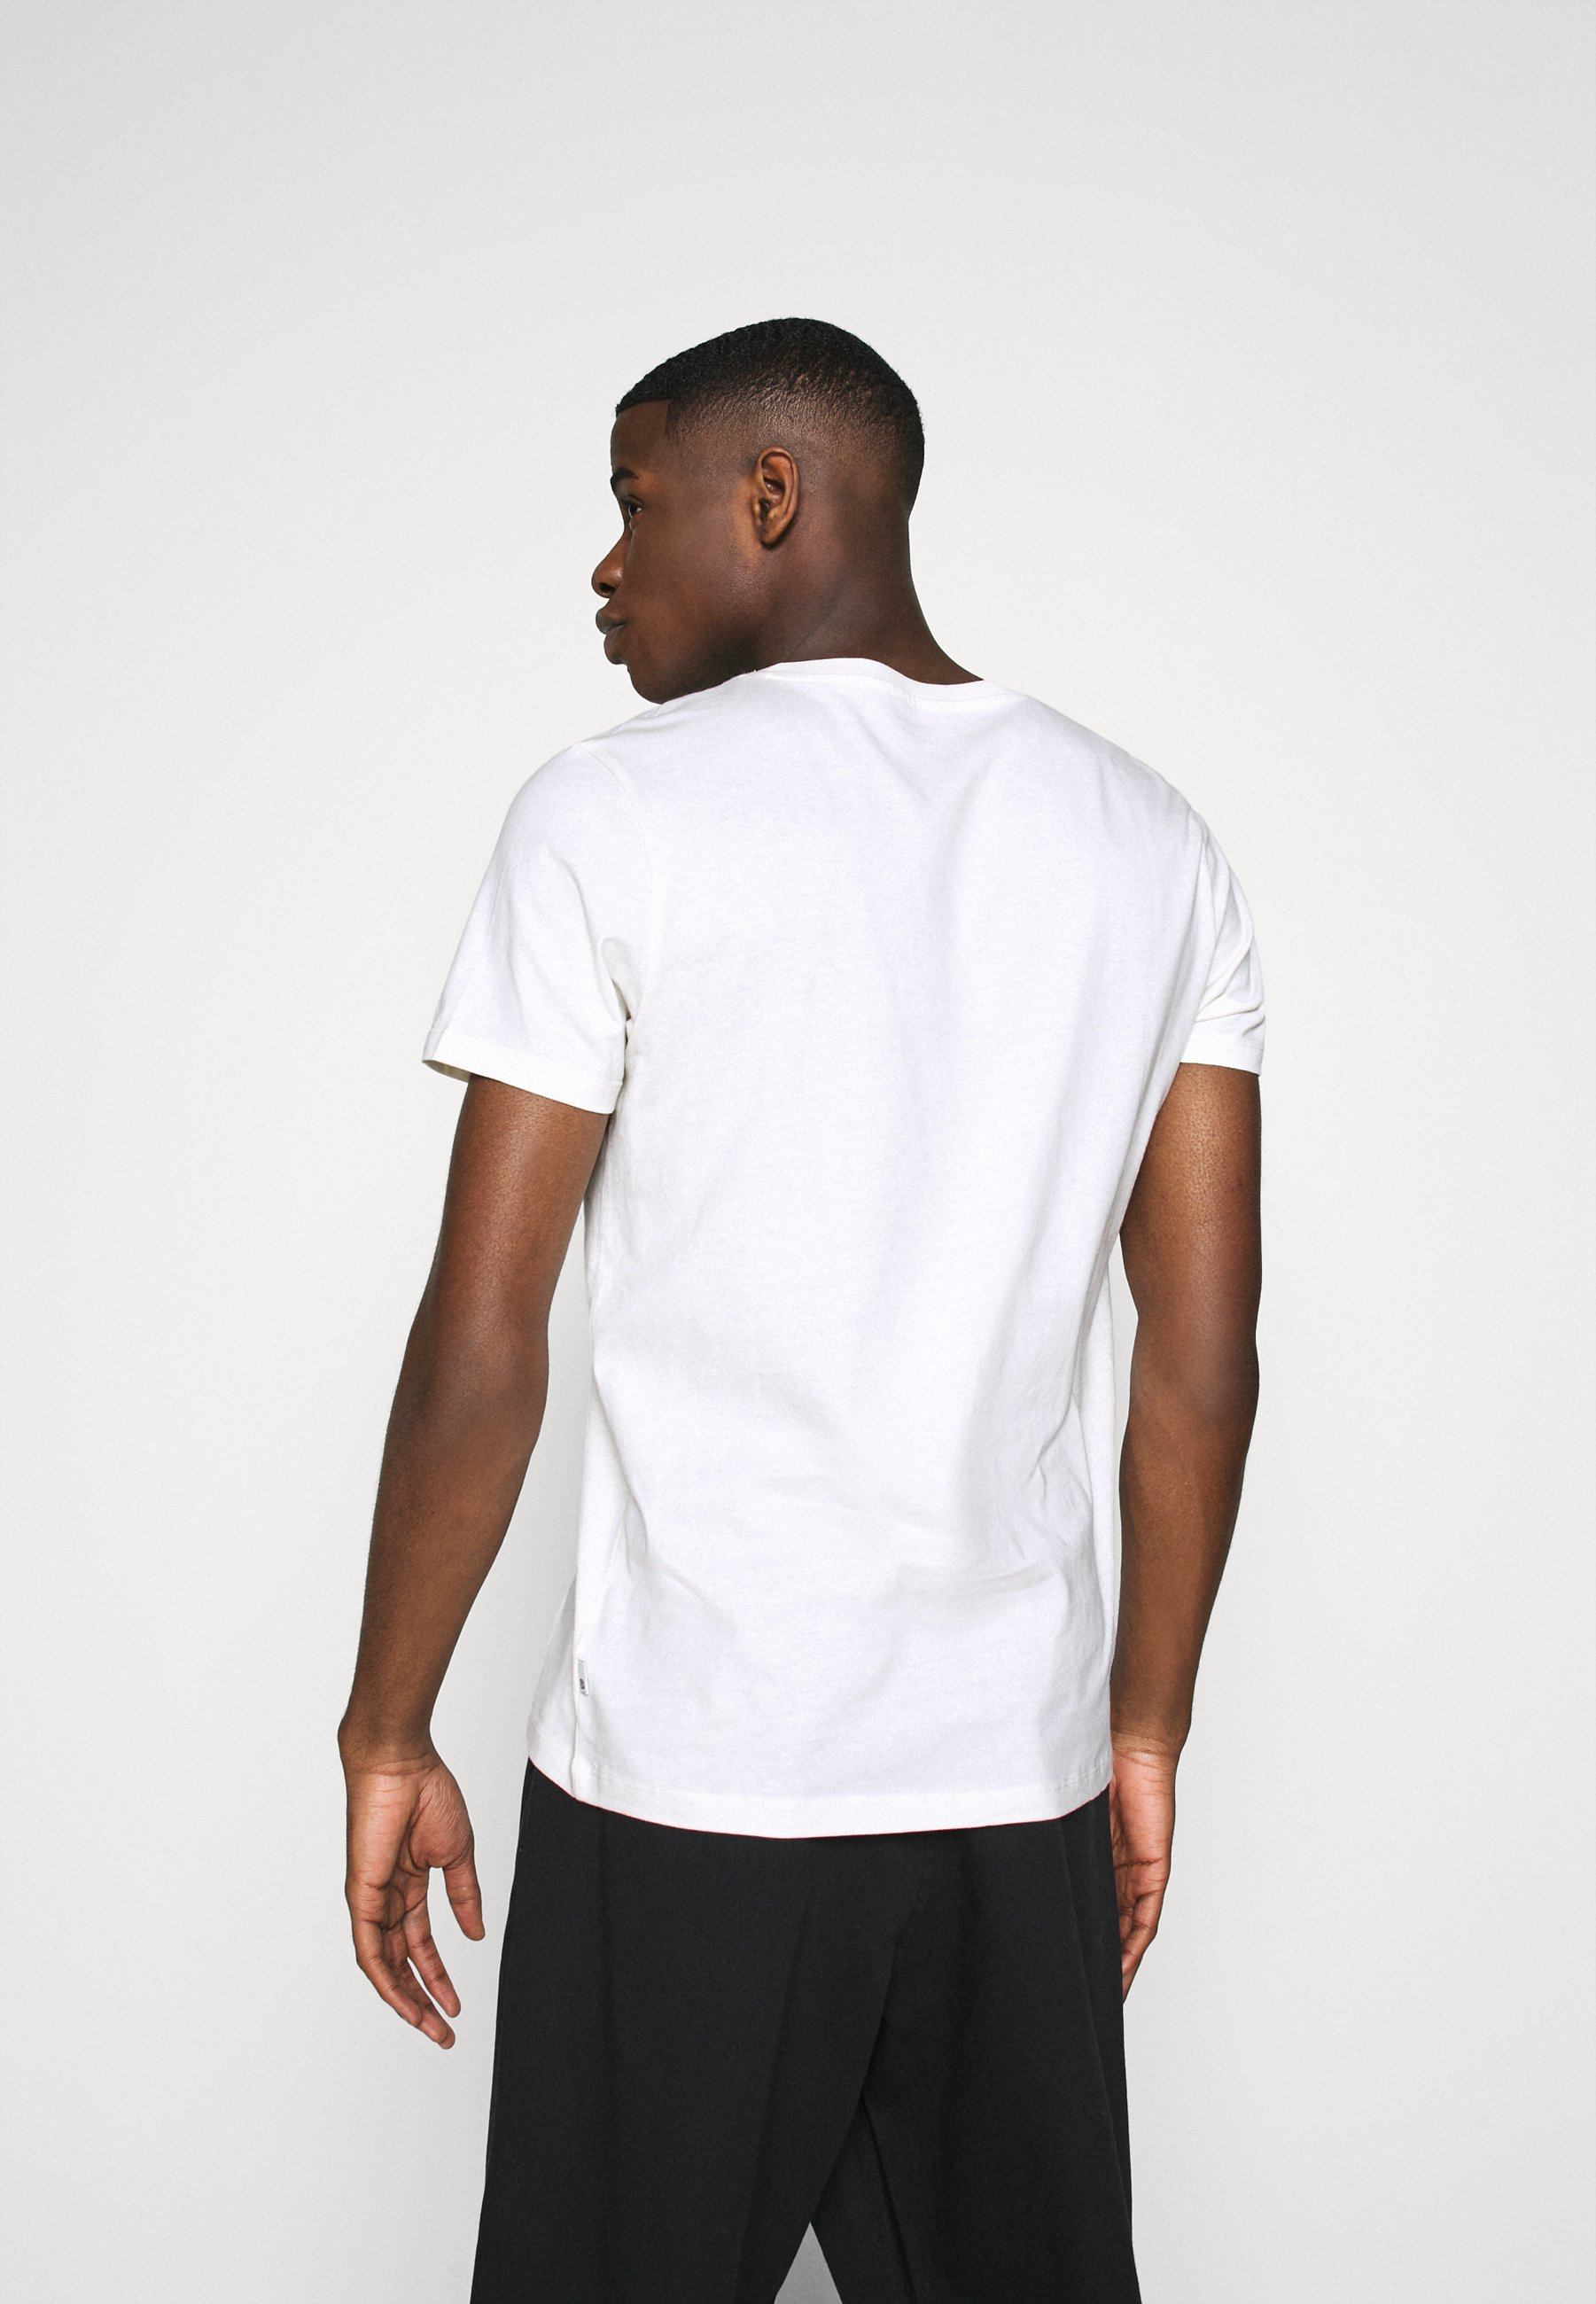 Burton Menswear London Short Sleeve Crew 5 Pack - T-shirts Off White/white/mustard/light Grey Marl/charcoal Marl/navy Marl/offwhite